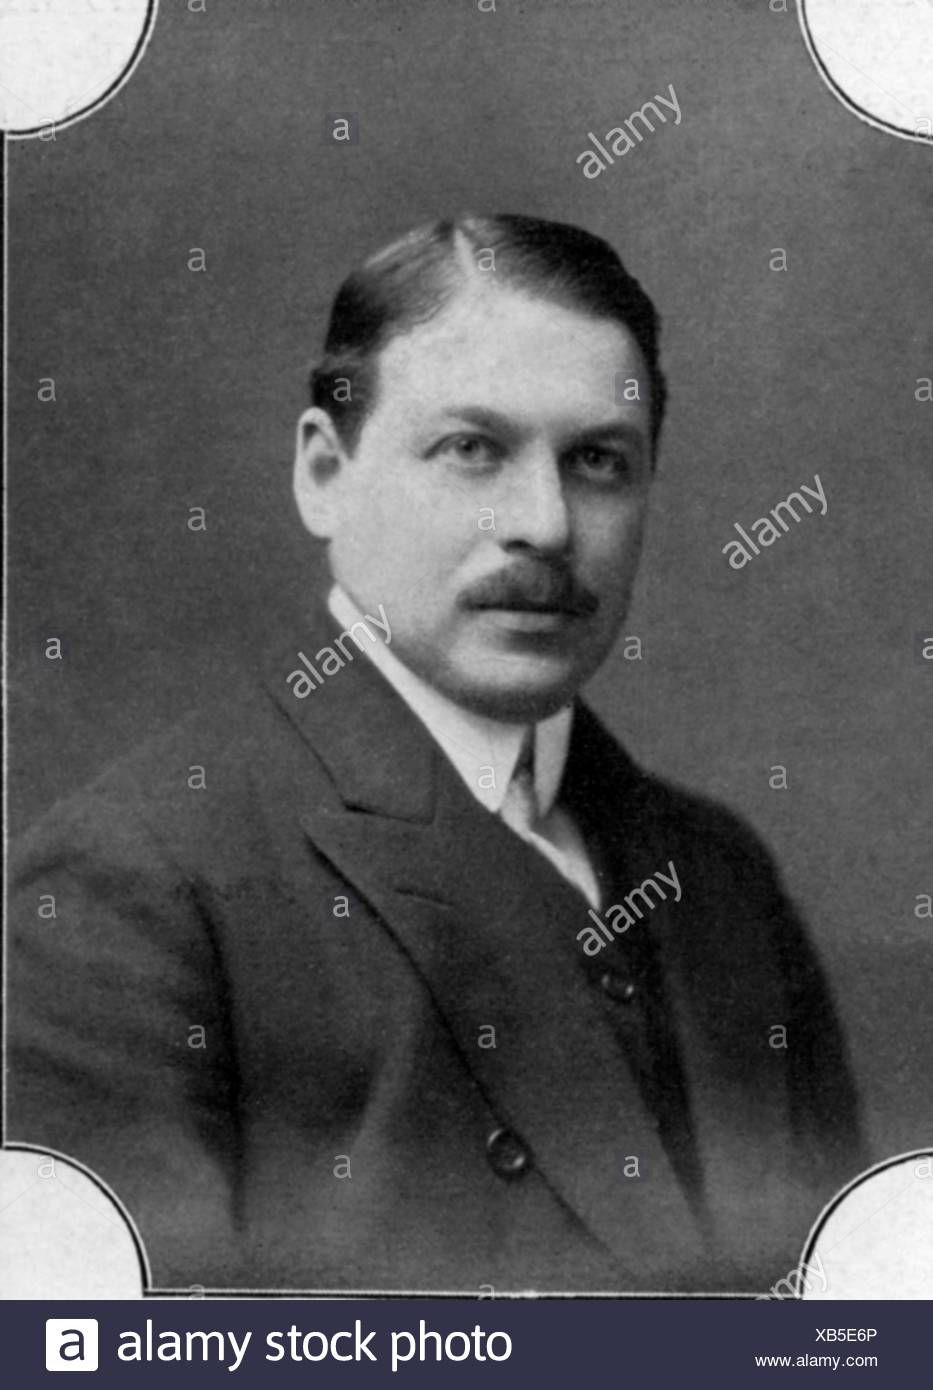 Kalman, Emmerich (Imre), 24.10.1882 - 30.10.1953, Hungarian composer, portrait, photograph by L. Gutmann, Additional-Rights-Clearances-NA - Stock Image